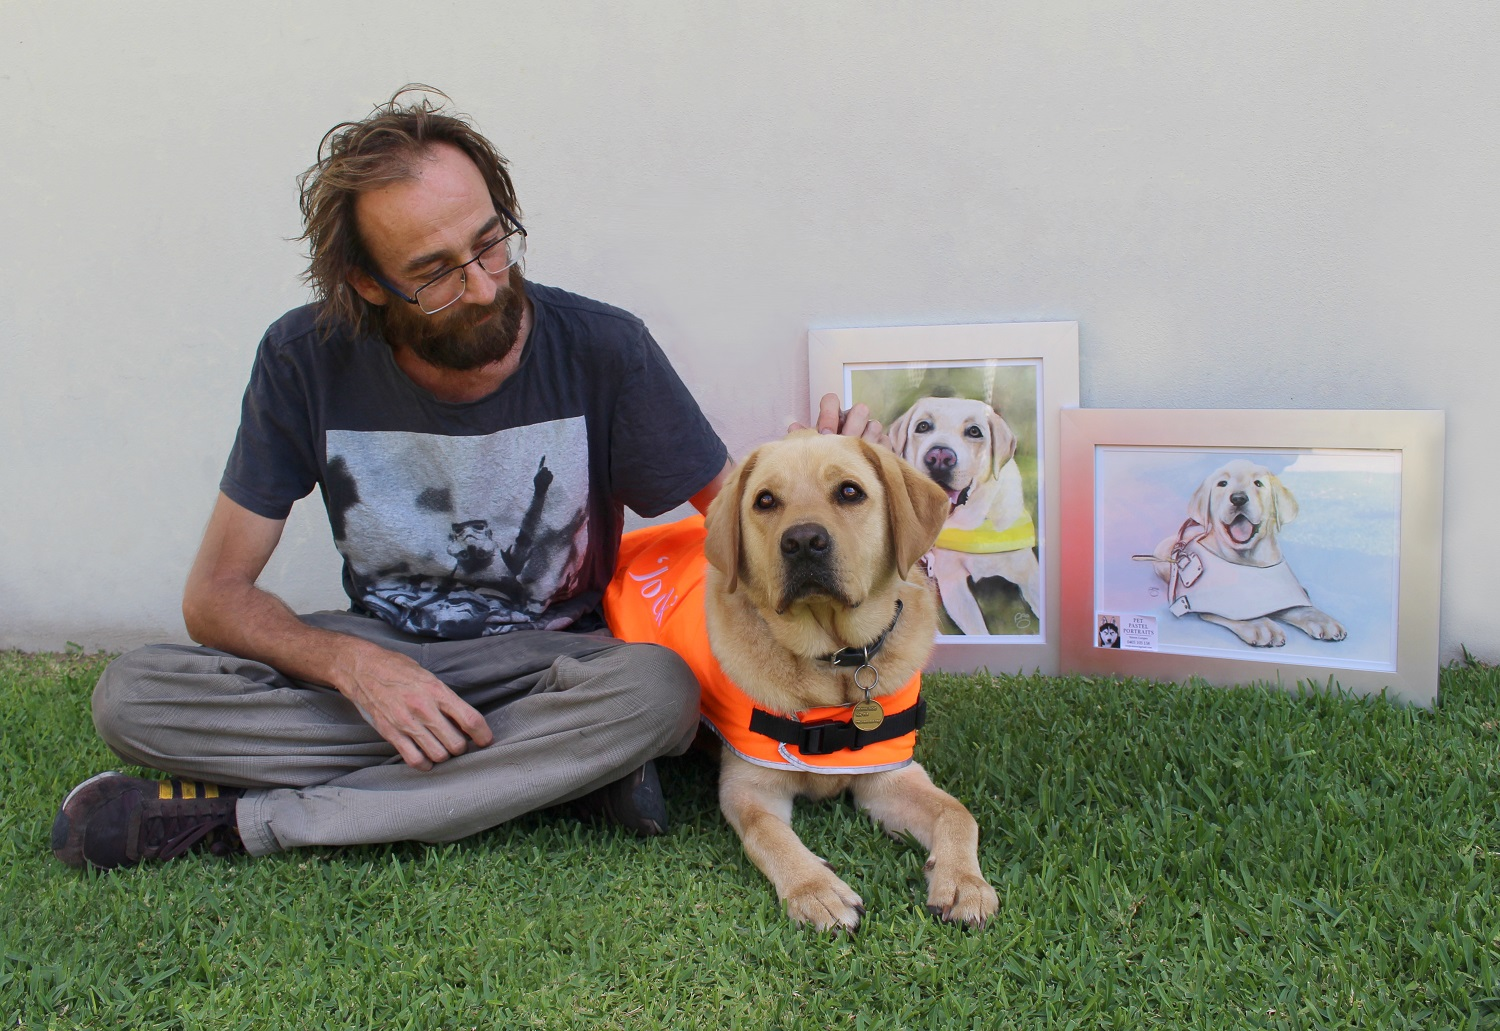 Simon with Jock and the portraits